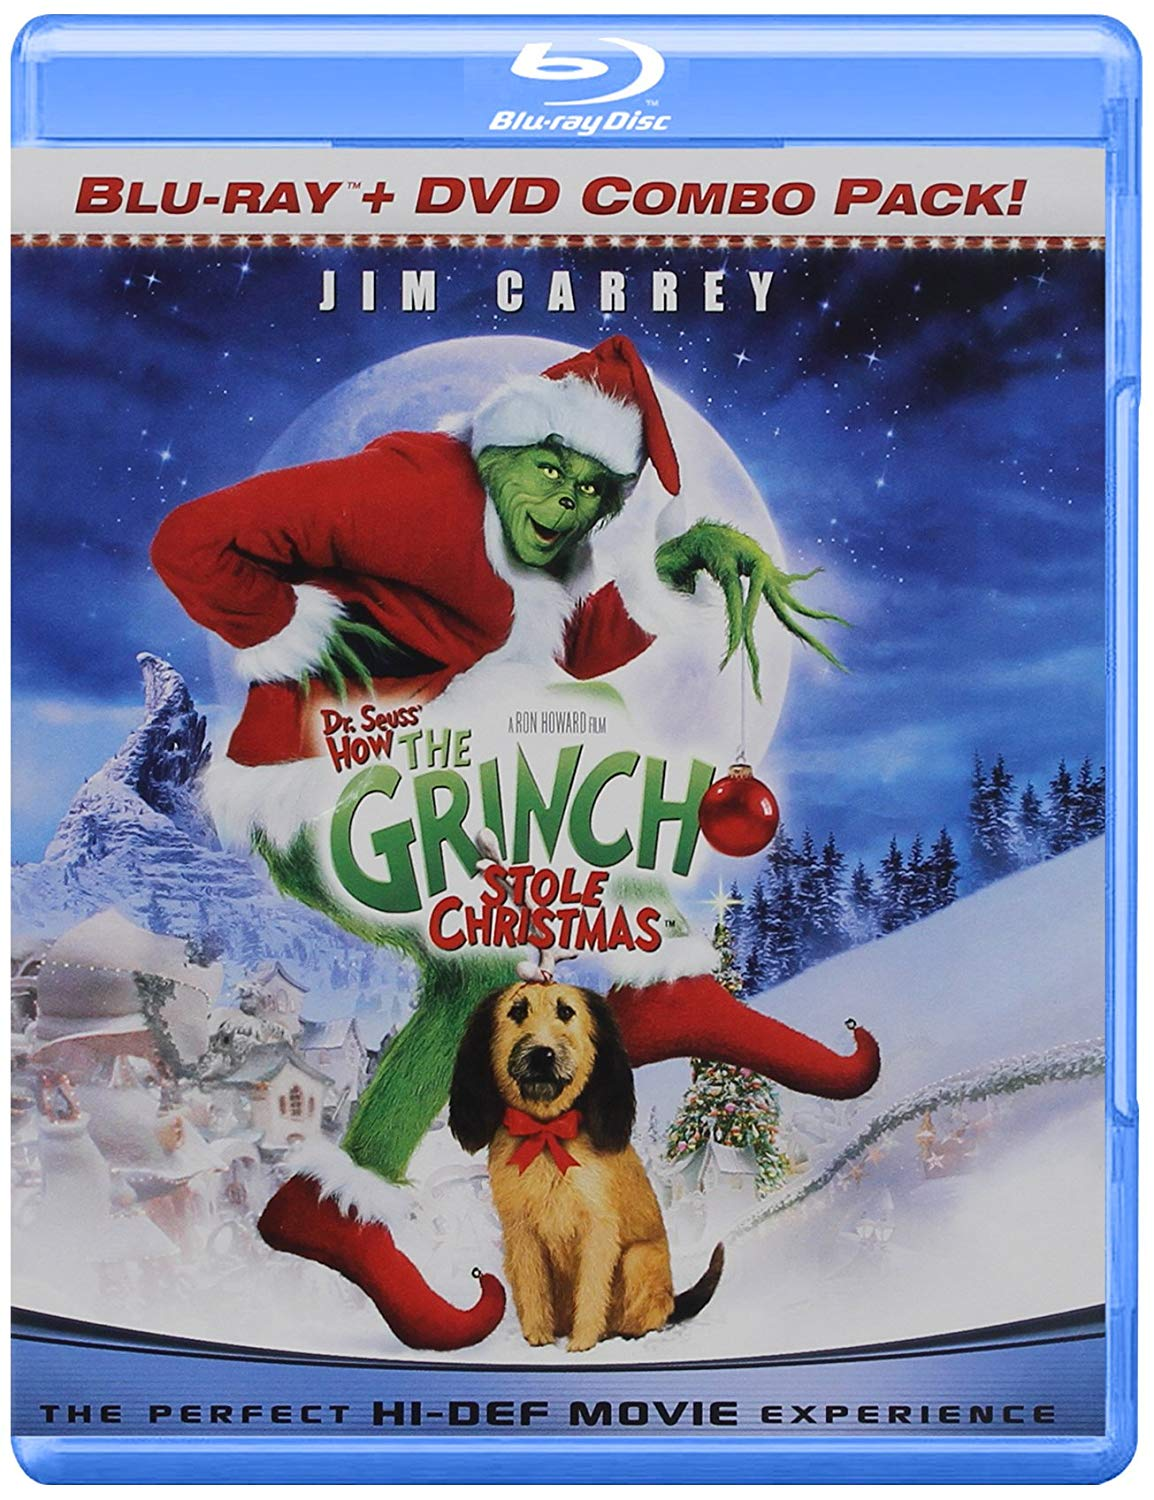 Dr. Seuss' The Grinch - How The Grinch Stole Christmas